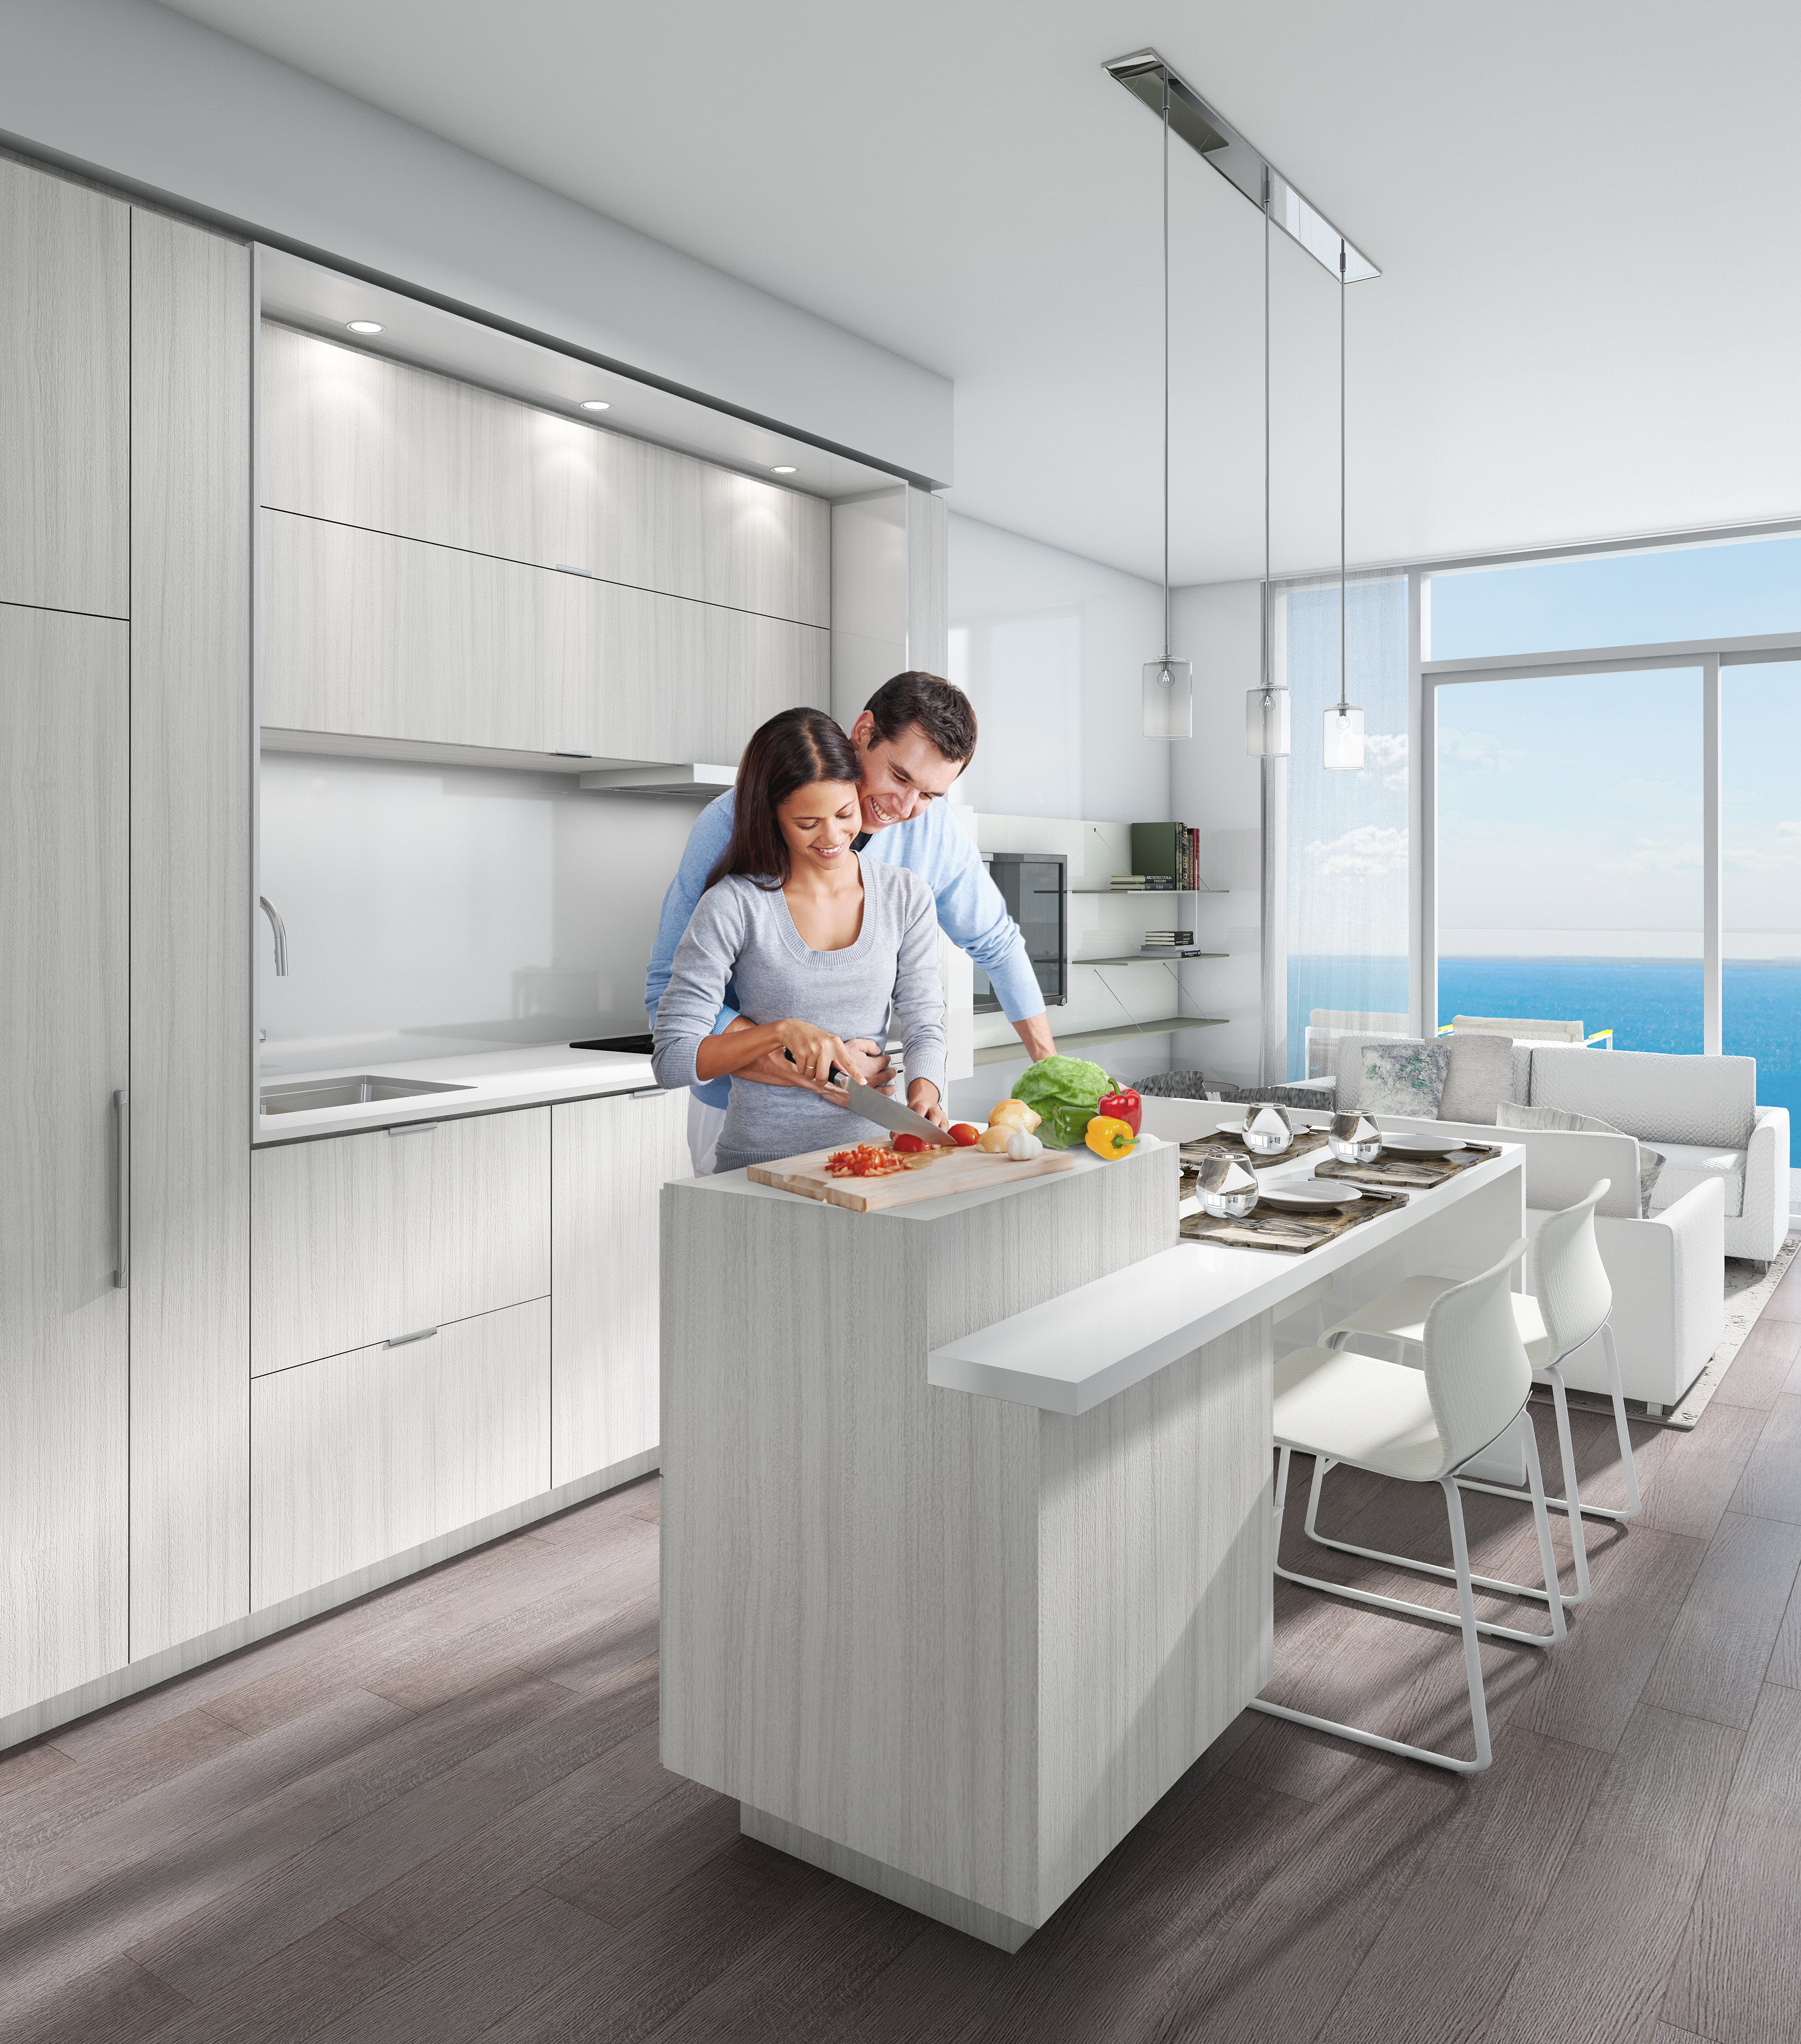 Gourmet kitchens showcase sleek modern cabinetry and premium Euro-style fully integrated panelized appliances